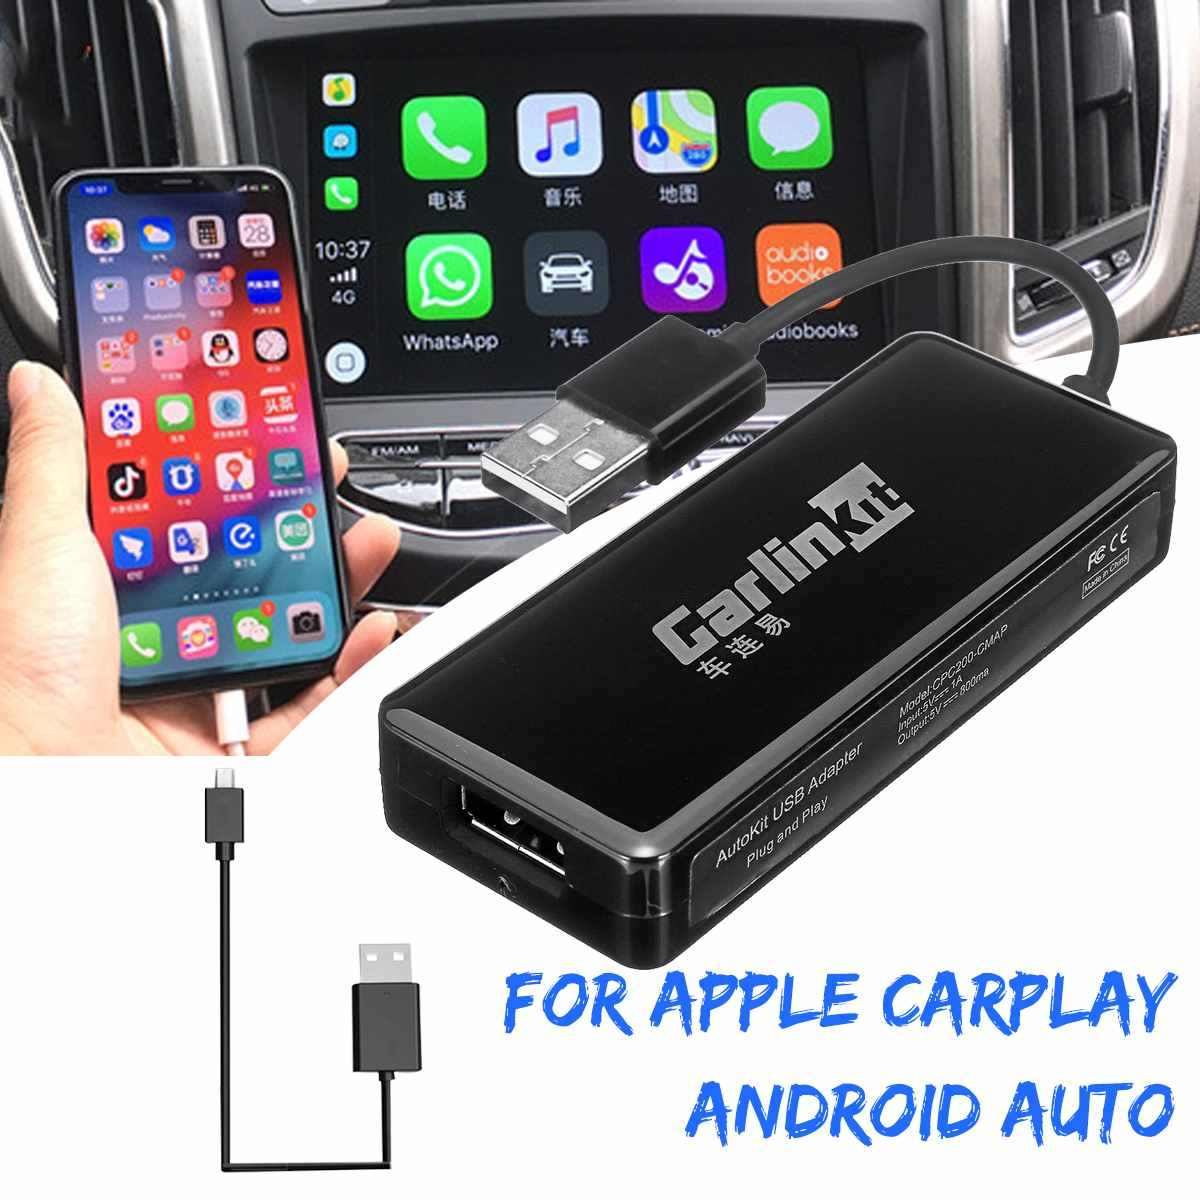 Carlinkit USB Ligação Dongle para Android Navegação Do Carro Do Carro Inteligente para A Apple Adaptador Carplay Carplay Módulo Auto USB Telefone Inteligente